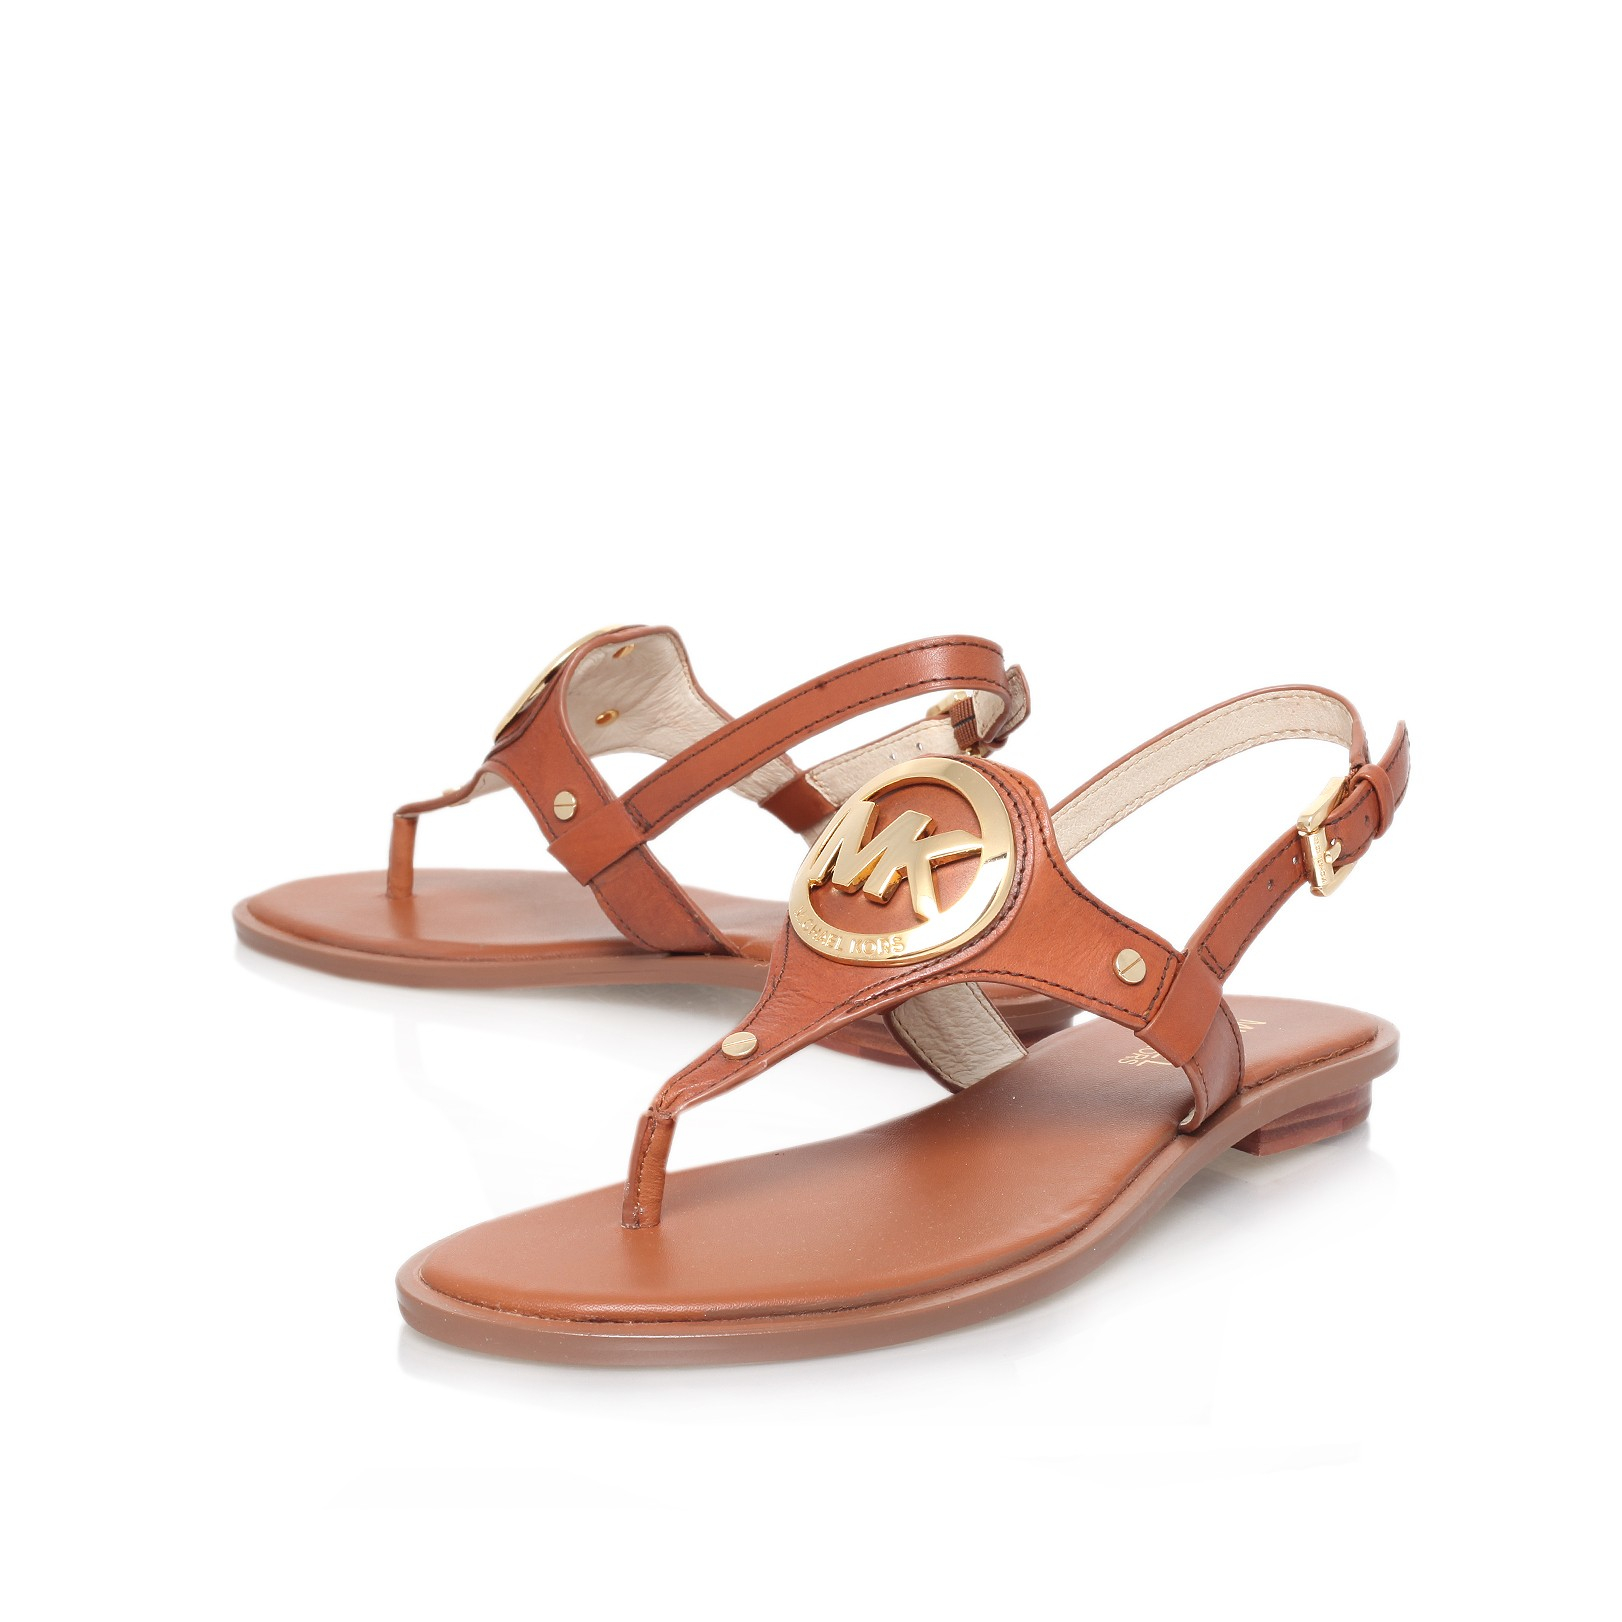 2e1641d787a5 MICHAEL Michael Kors Lee Leather Flat T-strap Sandal in Brown - Lyst